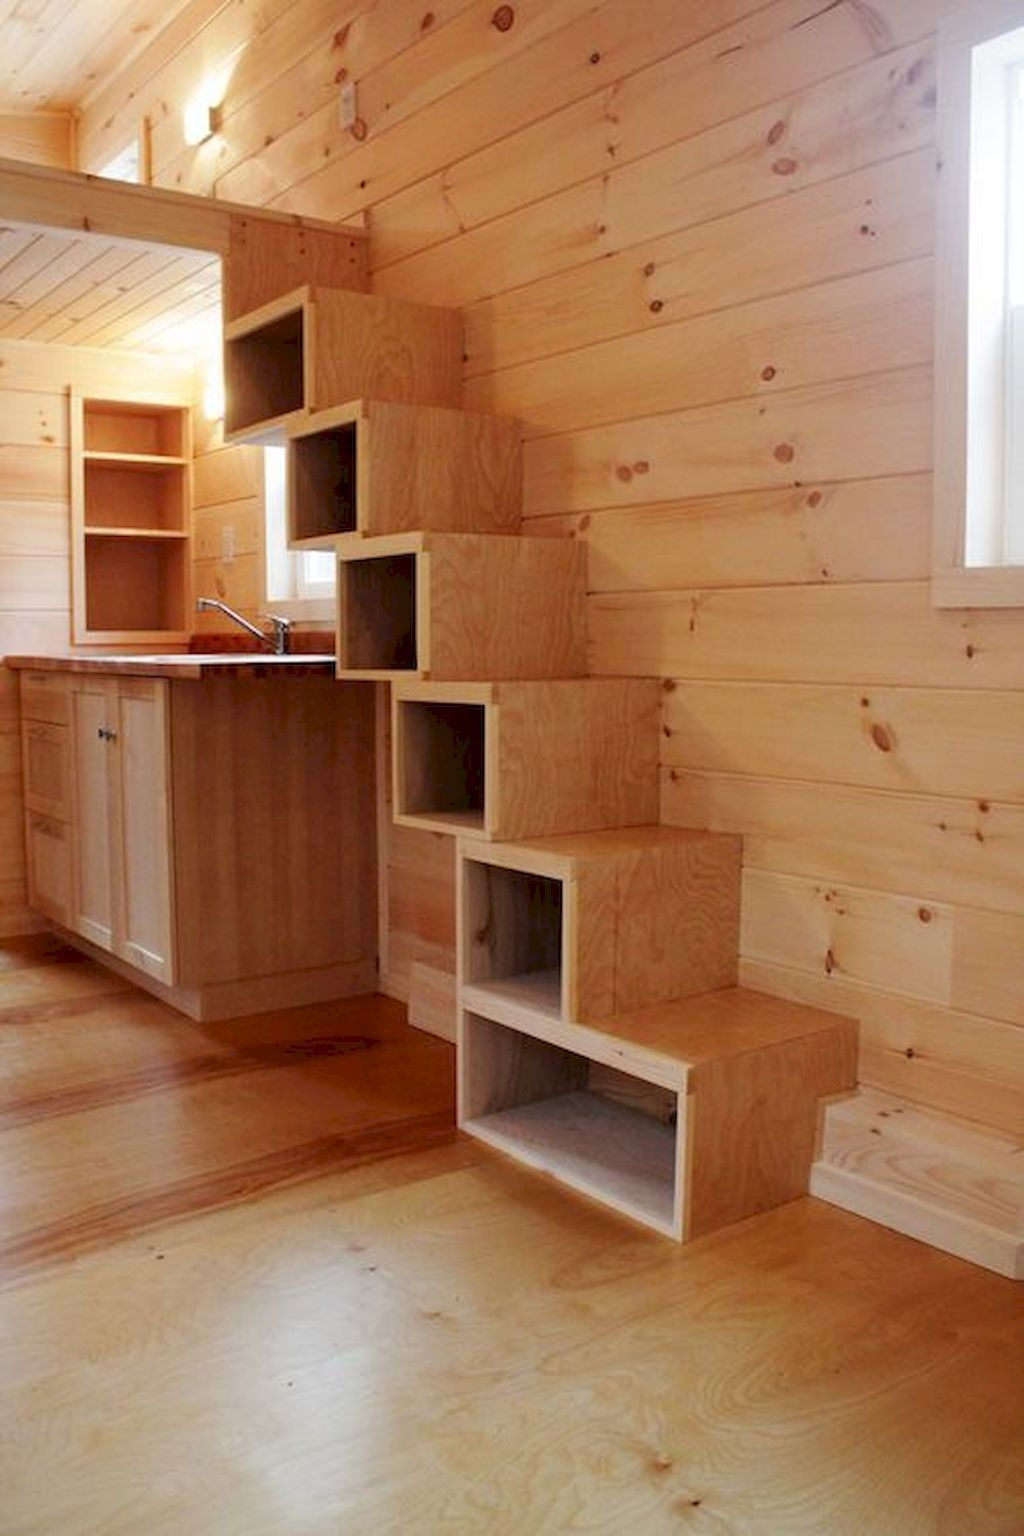 Incredible Stairs Design Ideas For The Attic To Try22